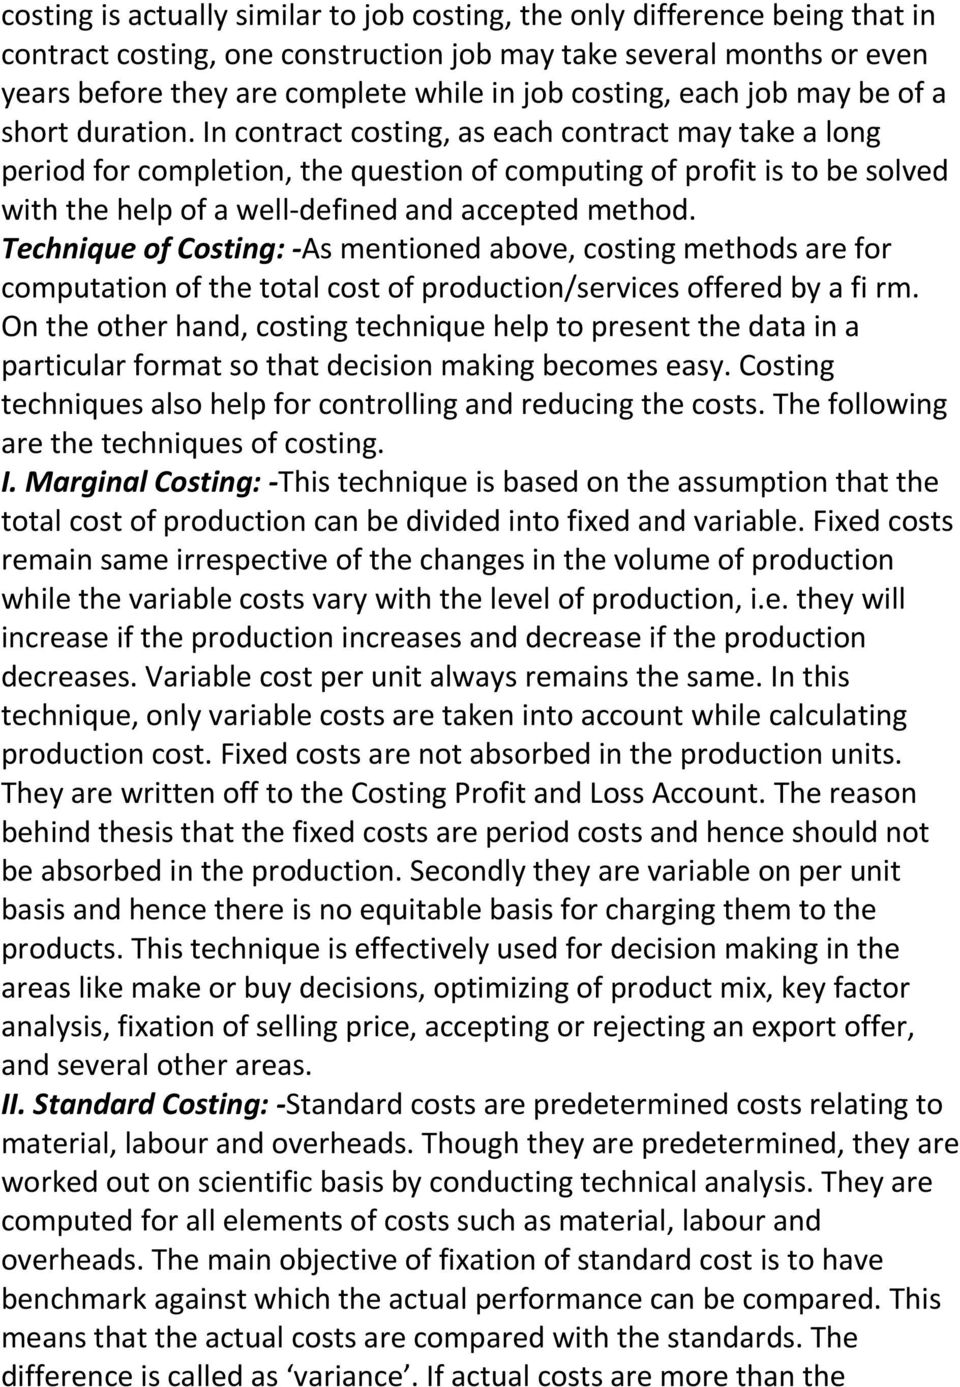 In contract costing, as each contract may take a long period for completion, the question of computing of profit is to be solved with the help of a well-defined and accepted method.